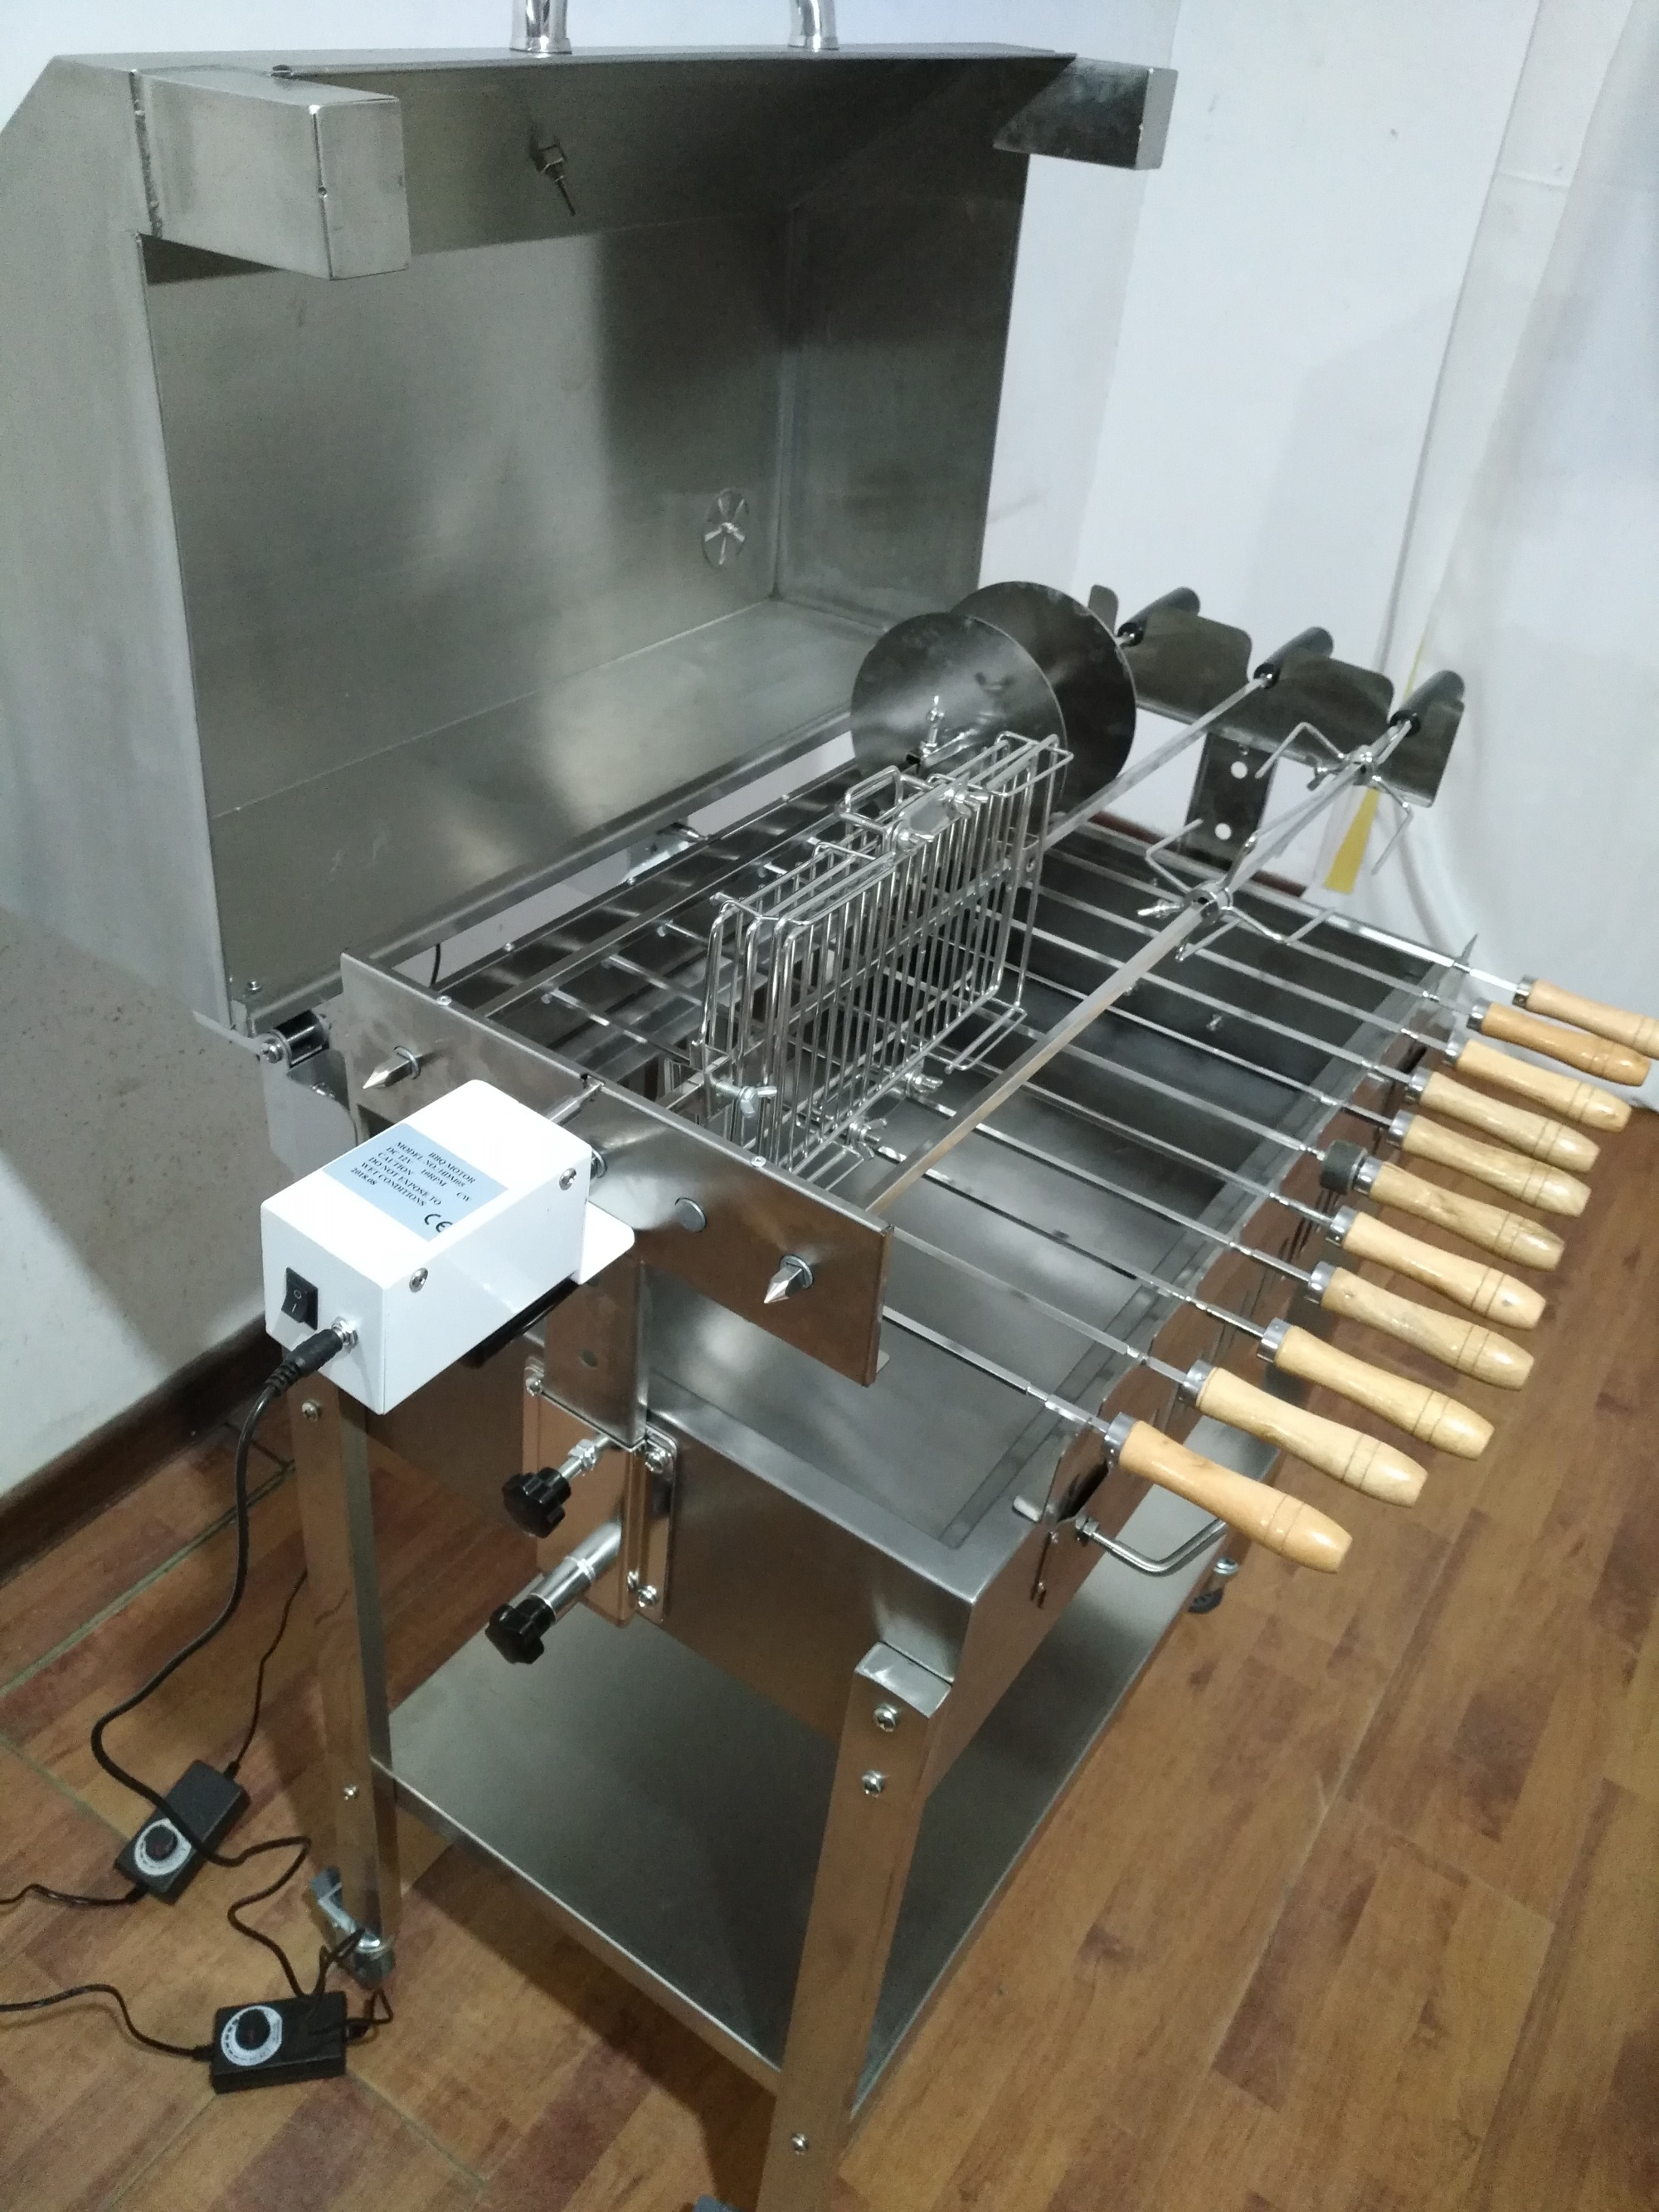 Automatic rotisserie barbecue!